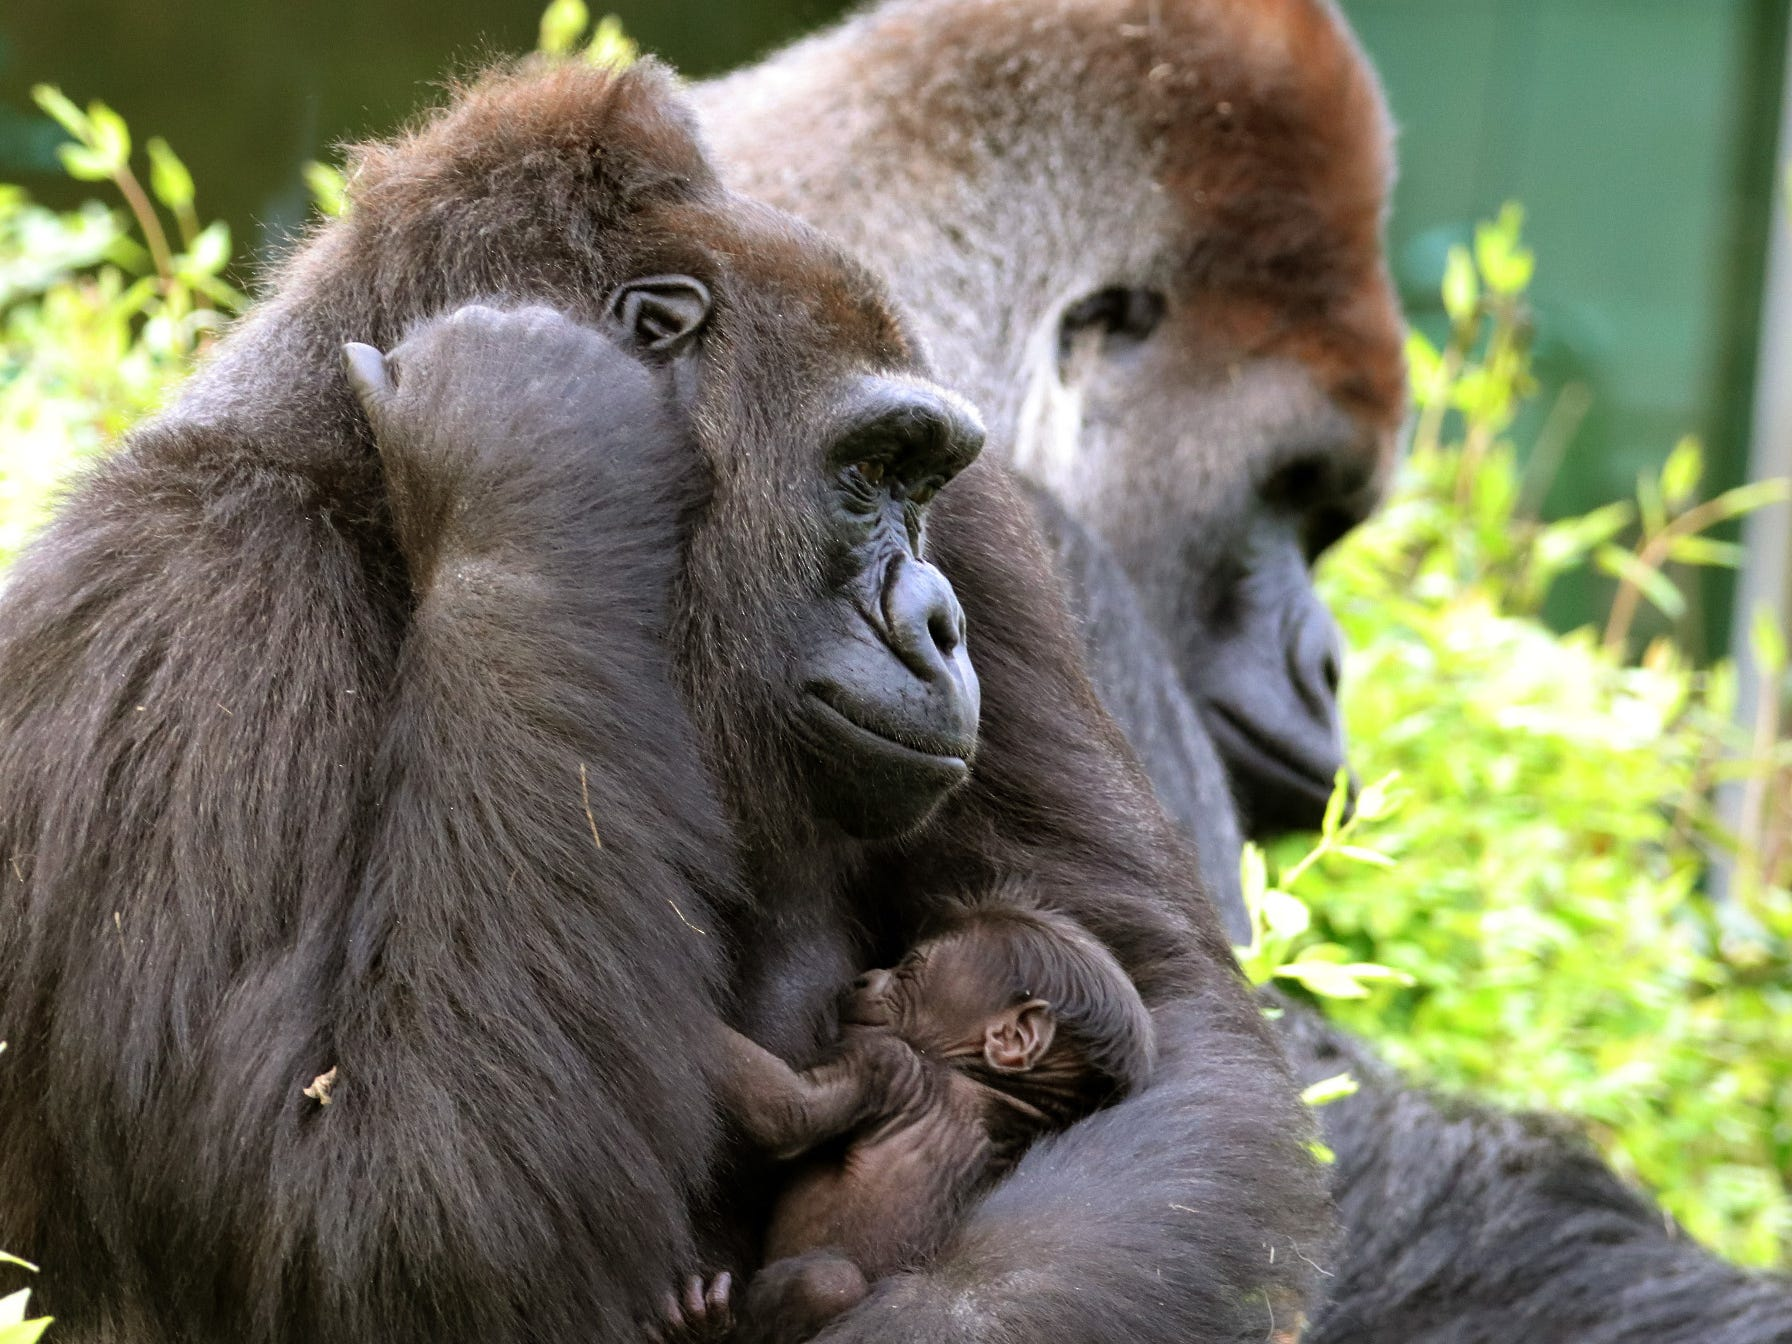 Mama Megan holds her baby gorilla, born March 7, at the Dallas Zoo.